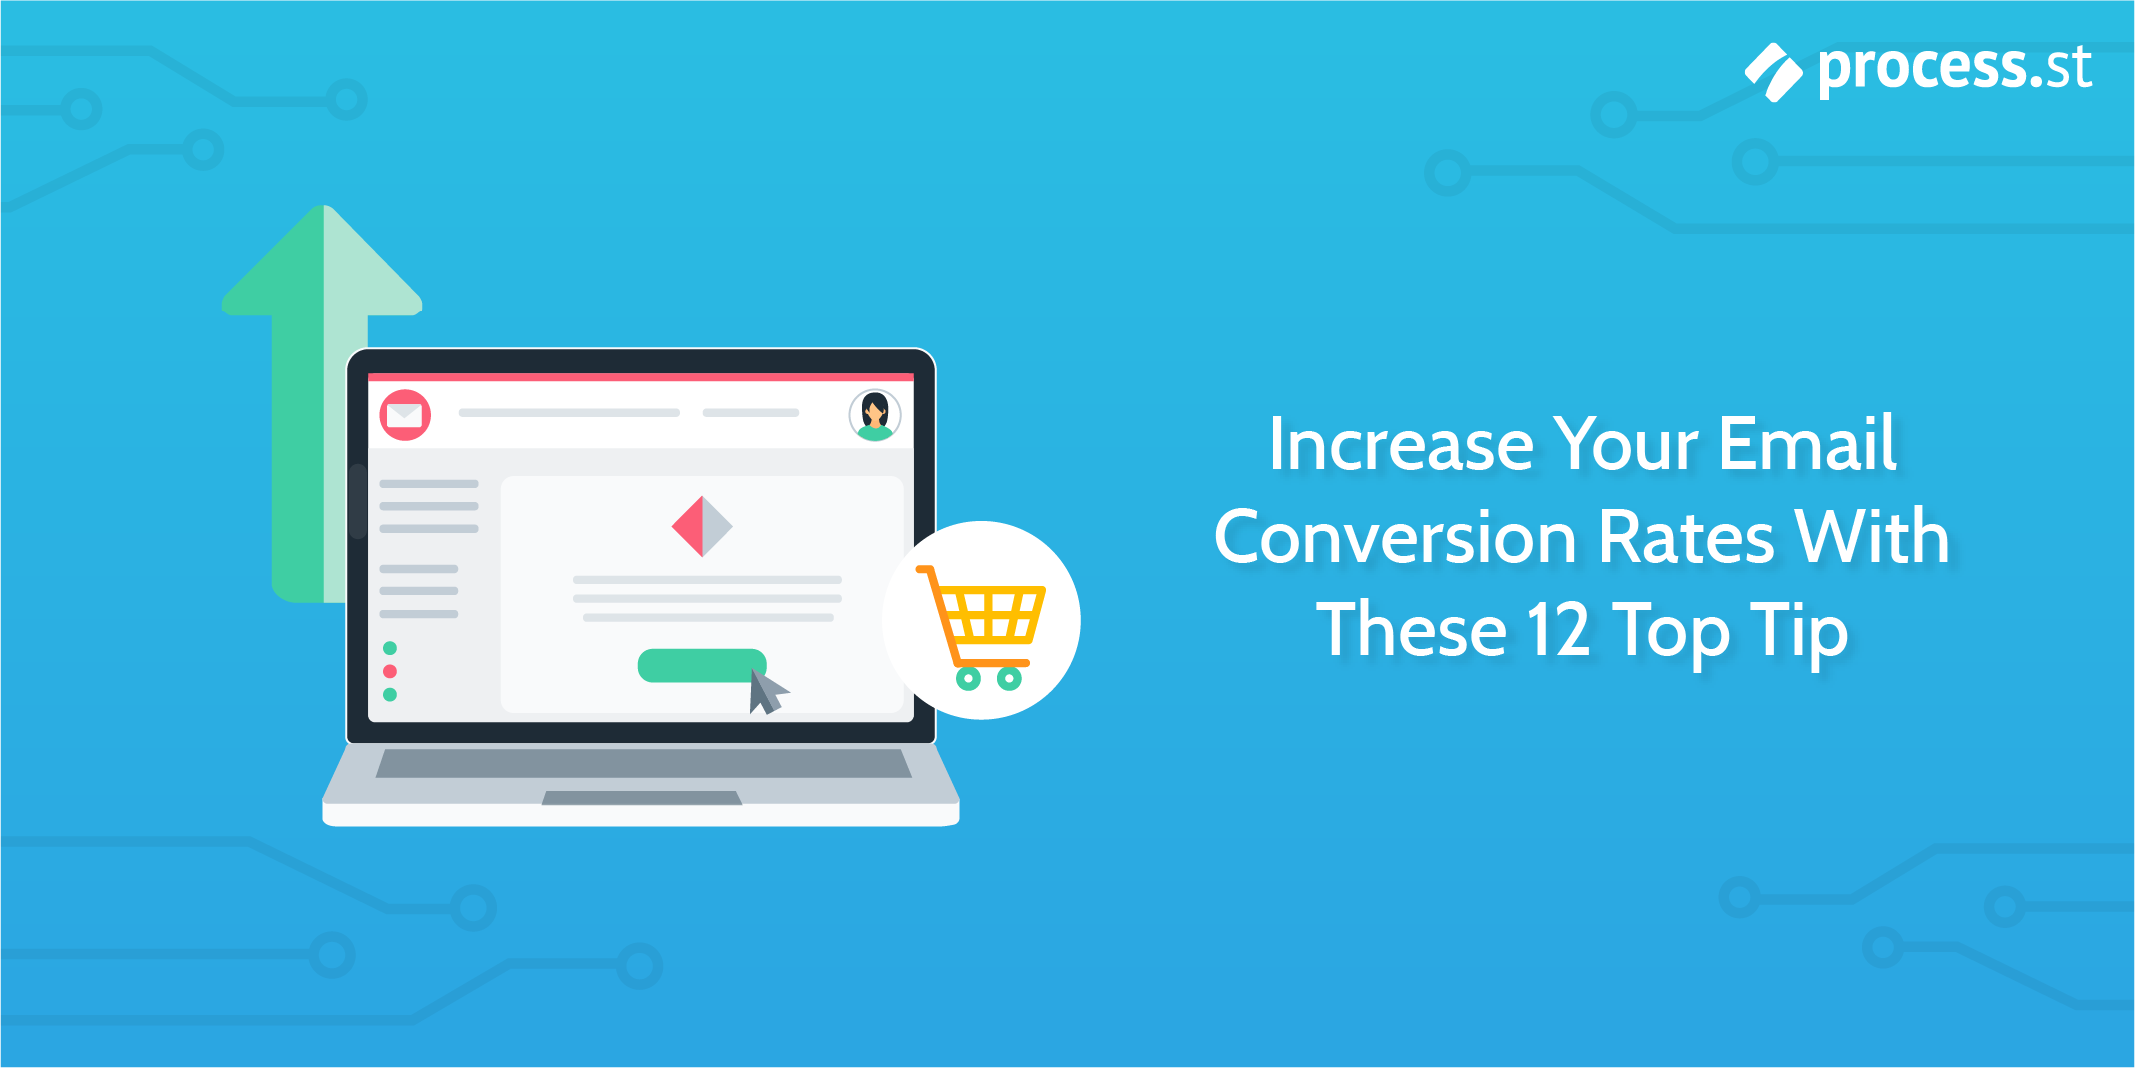 Increase Your Email Conversion Rates With These 12 Top Tip-Rev02-05